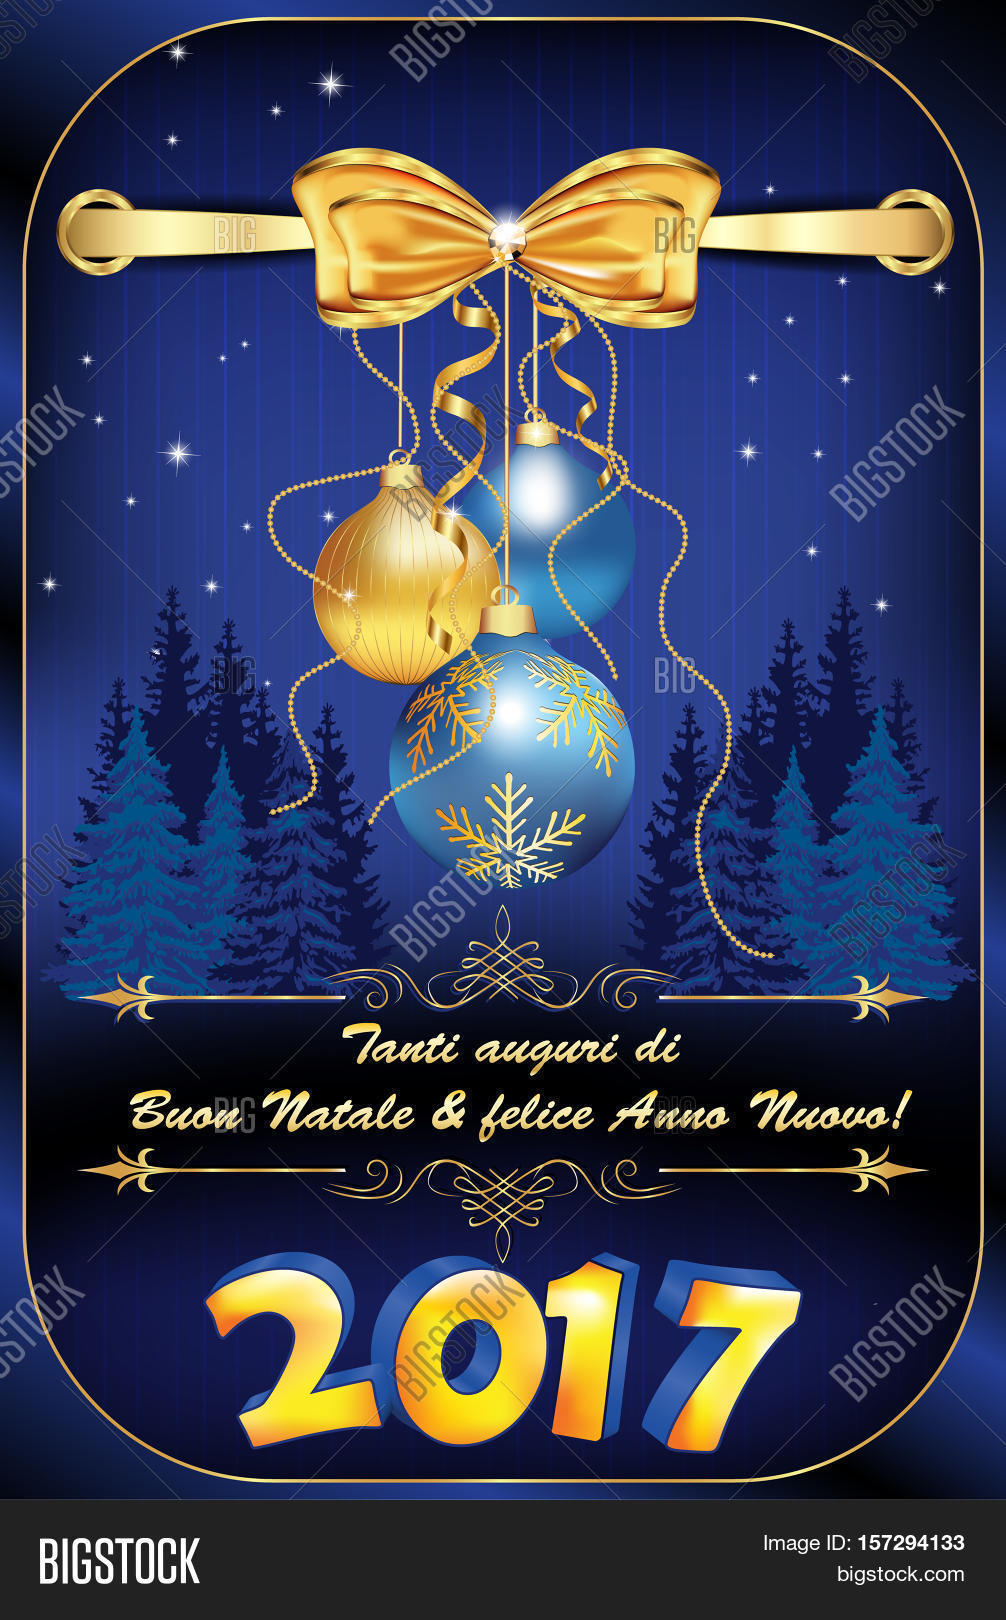 Auguri Di Buon Natale Merry Christmas.We Wish You Merry Image Photo Free Trial Bigstock